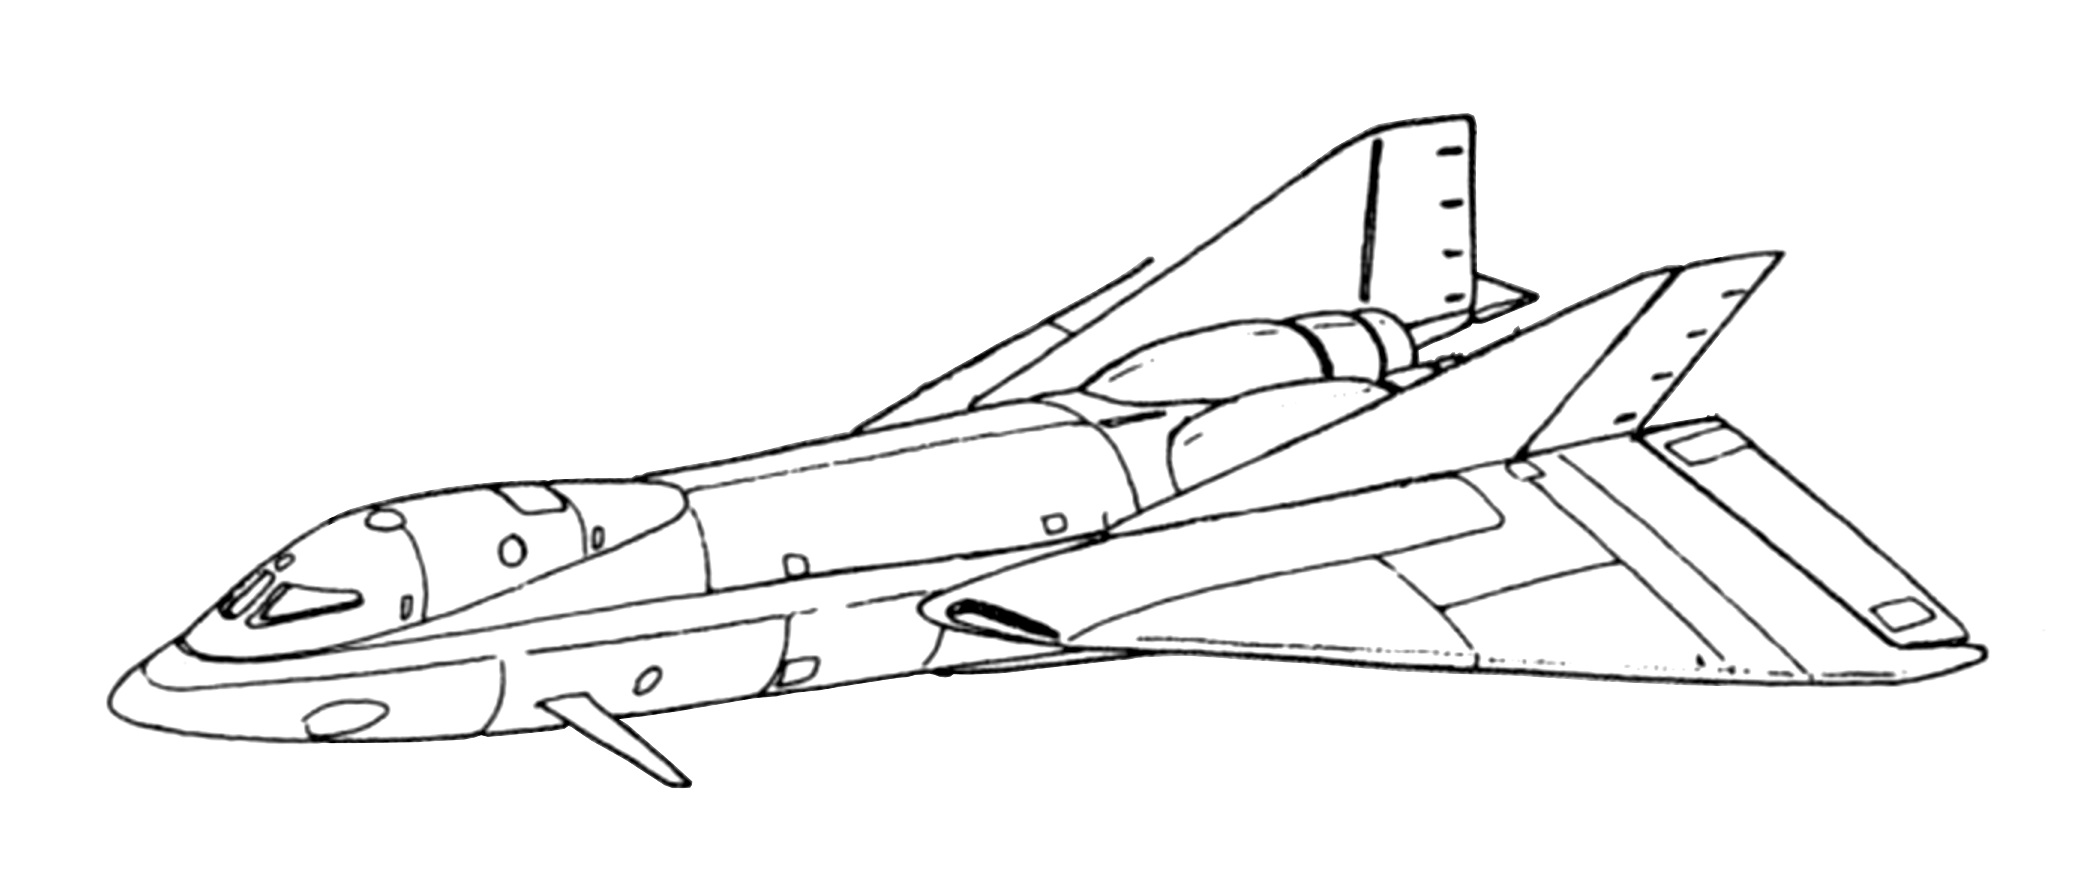 AS-14 Pegasus Cargo Assault Aerospacecraft 1